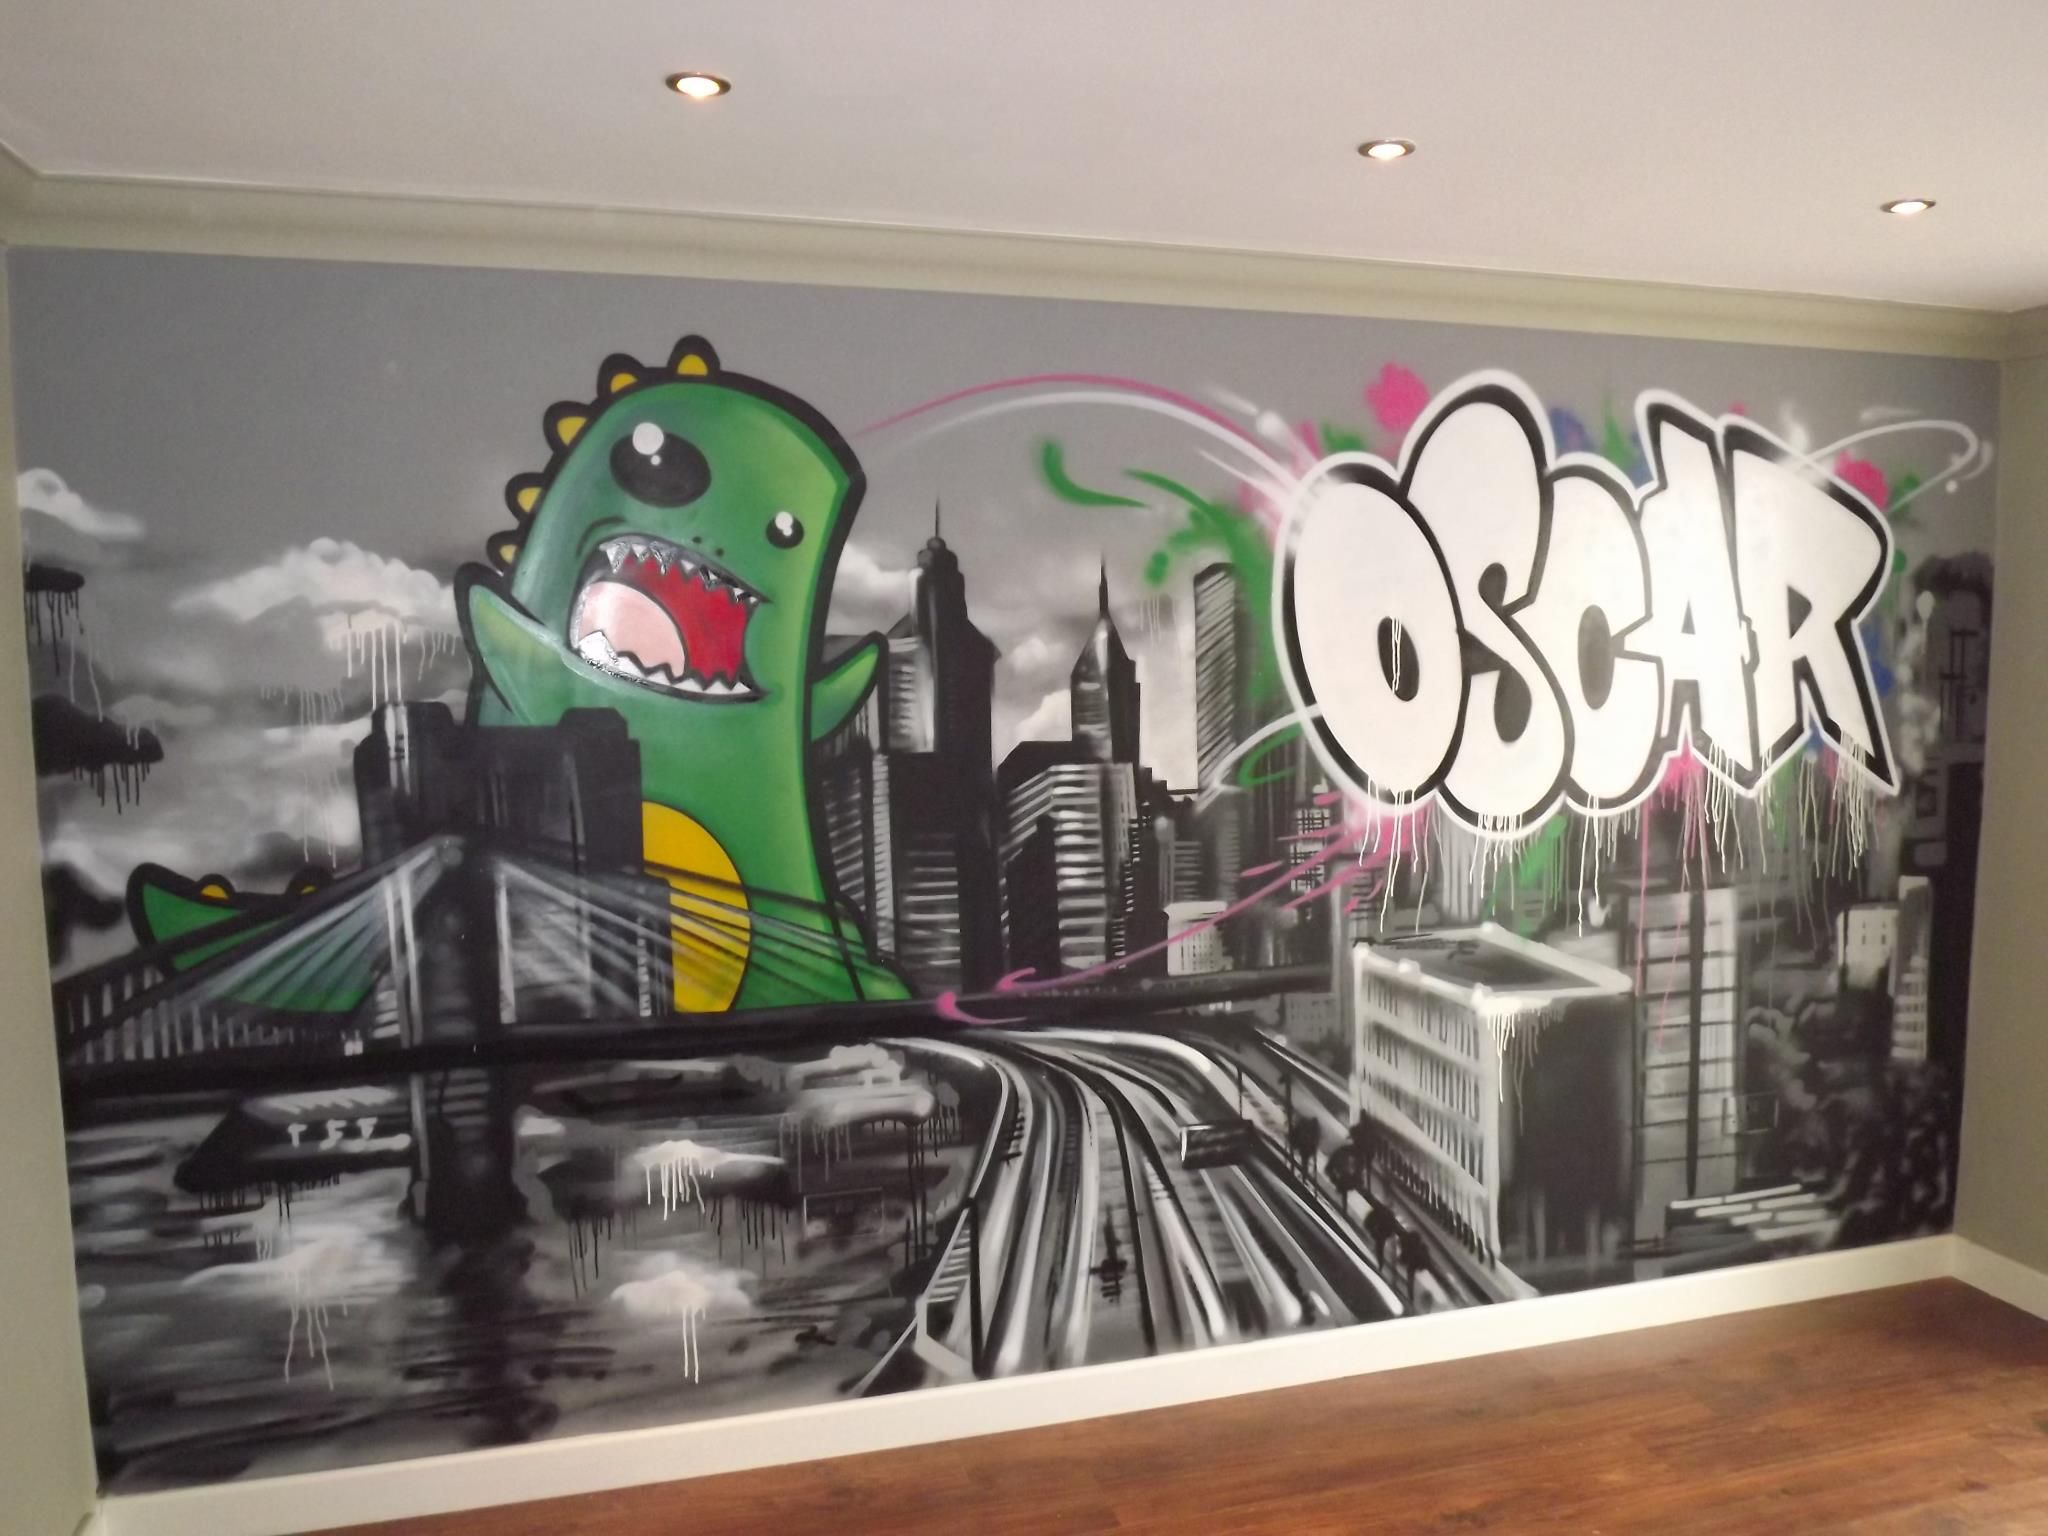 Graffiti wall art bedroom - Children Teen Kids Bedroom Graffiti Mural Hand Painted Graffiti Skyline And Dino Feature Wall Design Design